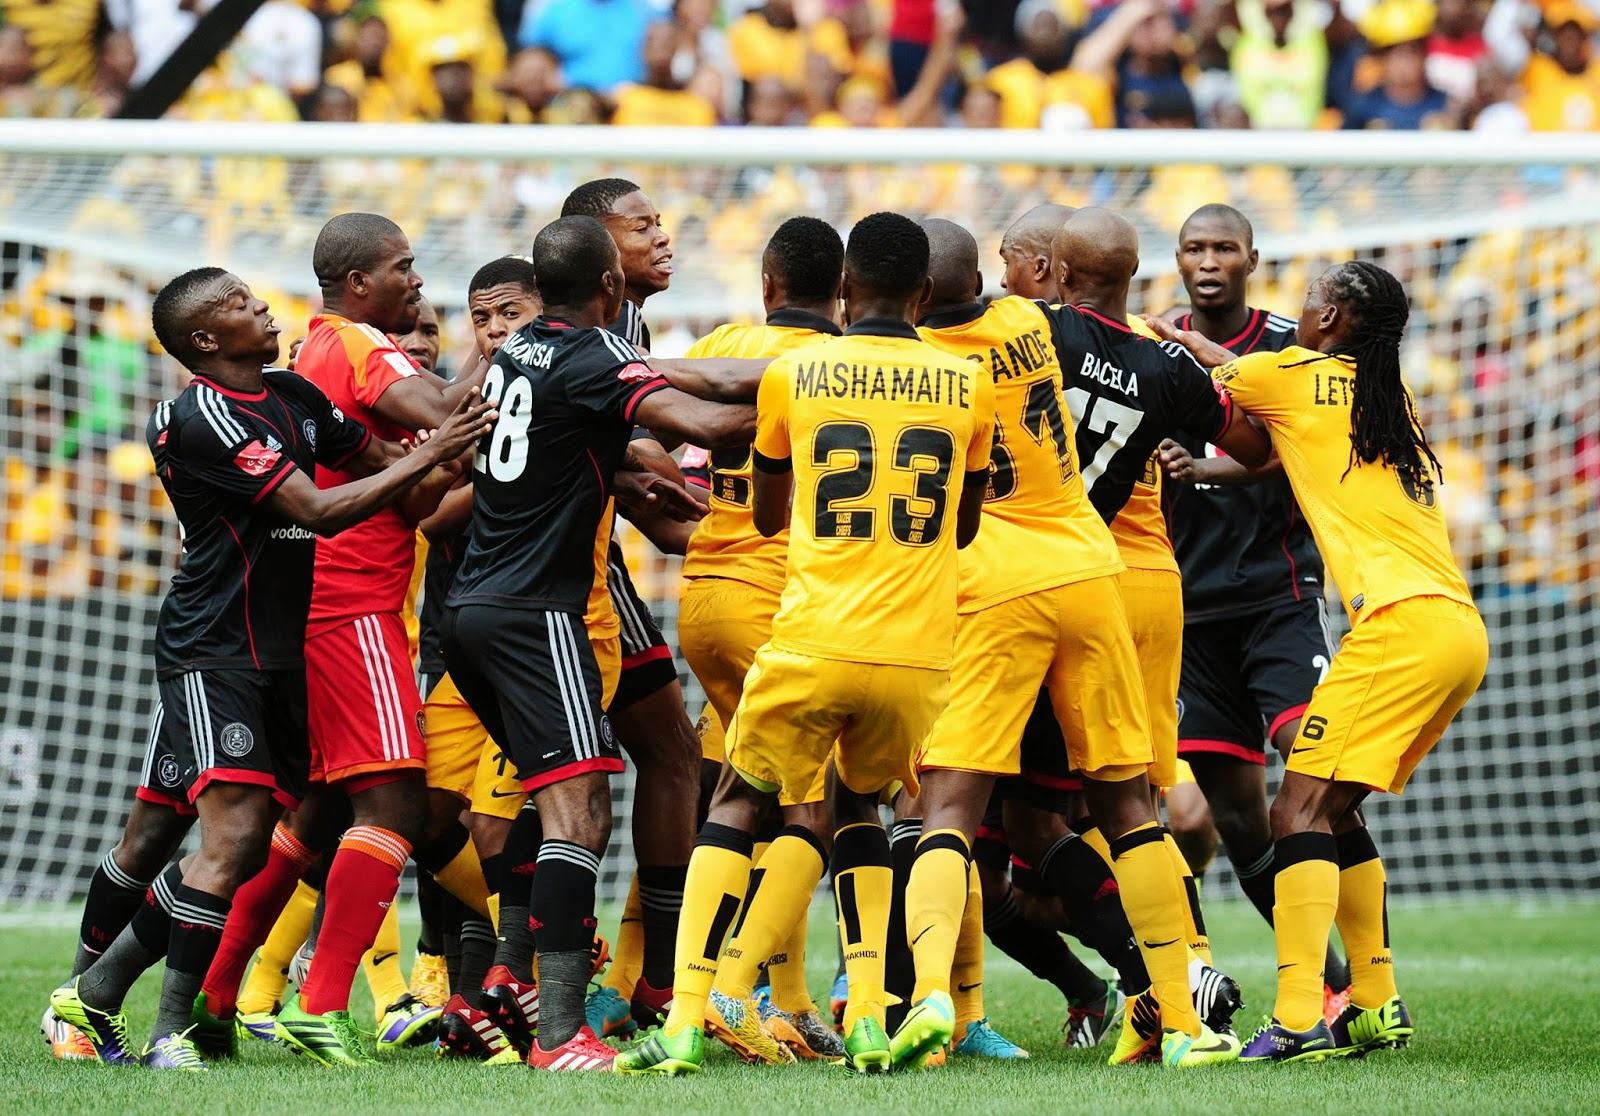 Pirates Vs Chiefs: We Need Tough Referees For The Soweto Derby